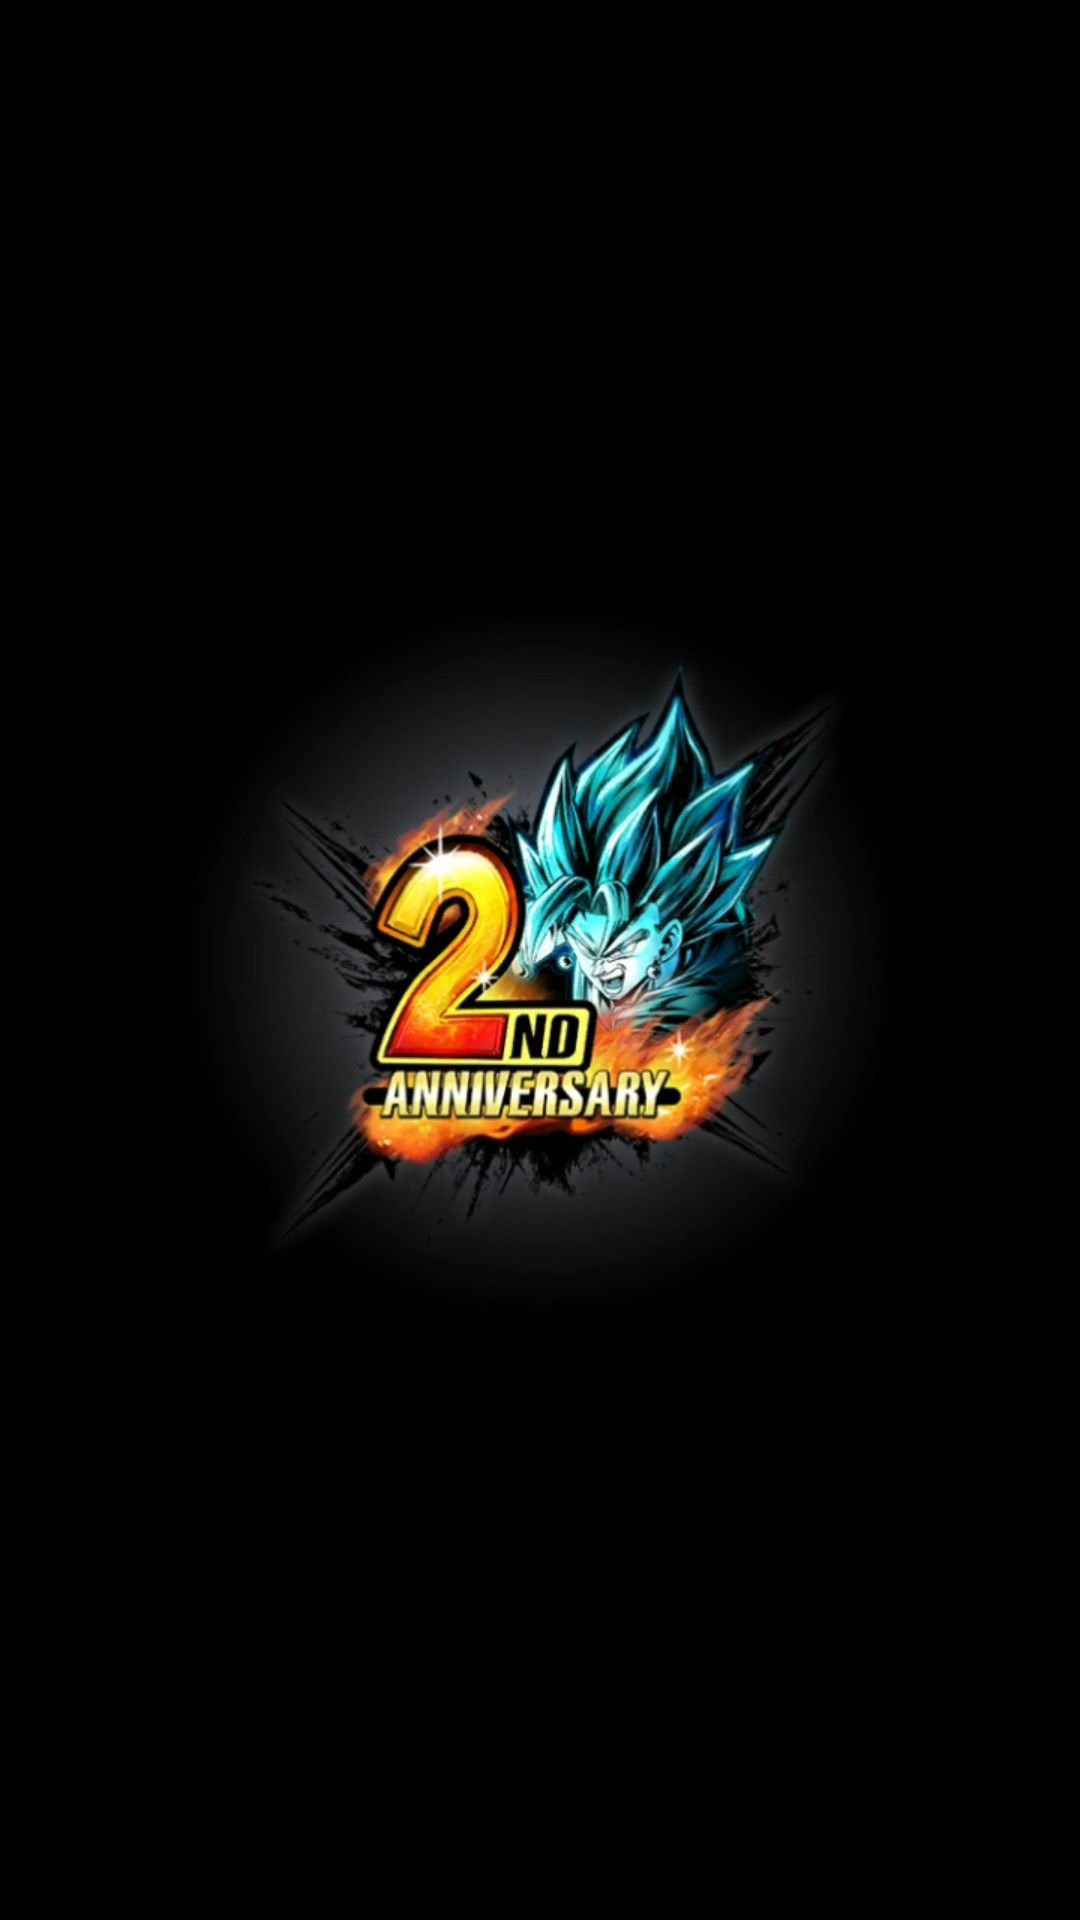 Dragon Ball Legends 2nd Anniversary